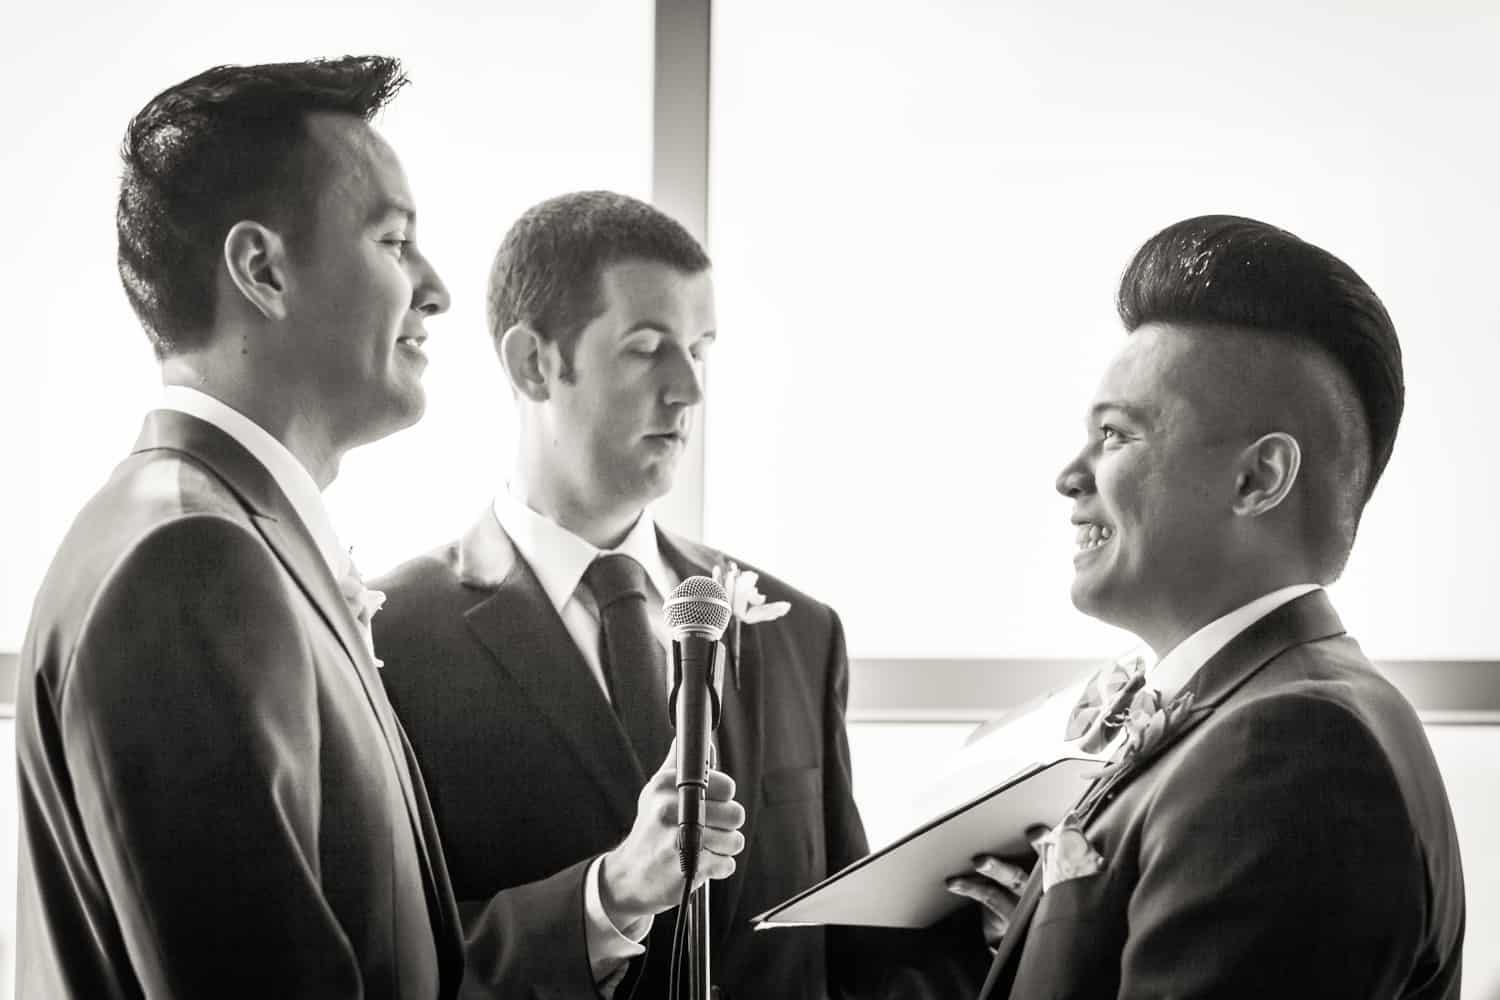 Black and white photo of two grooms exchanging vows